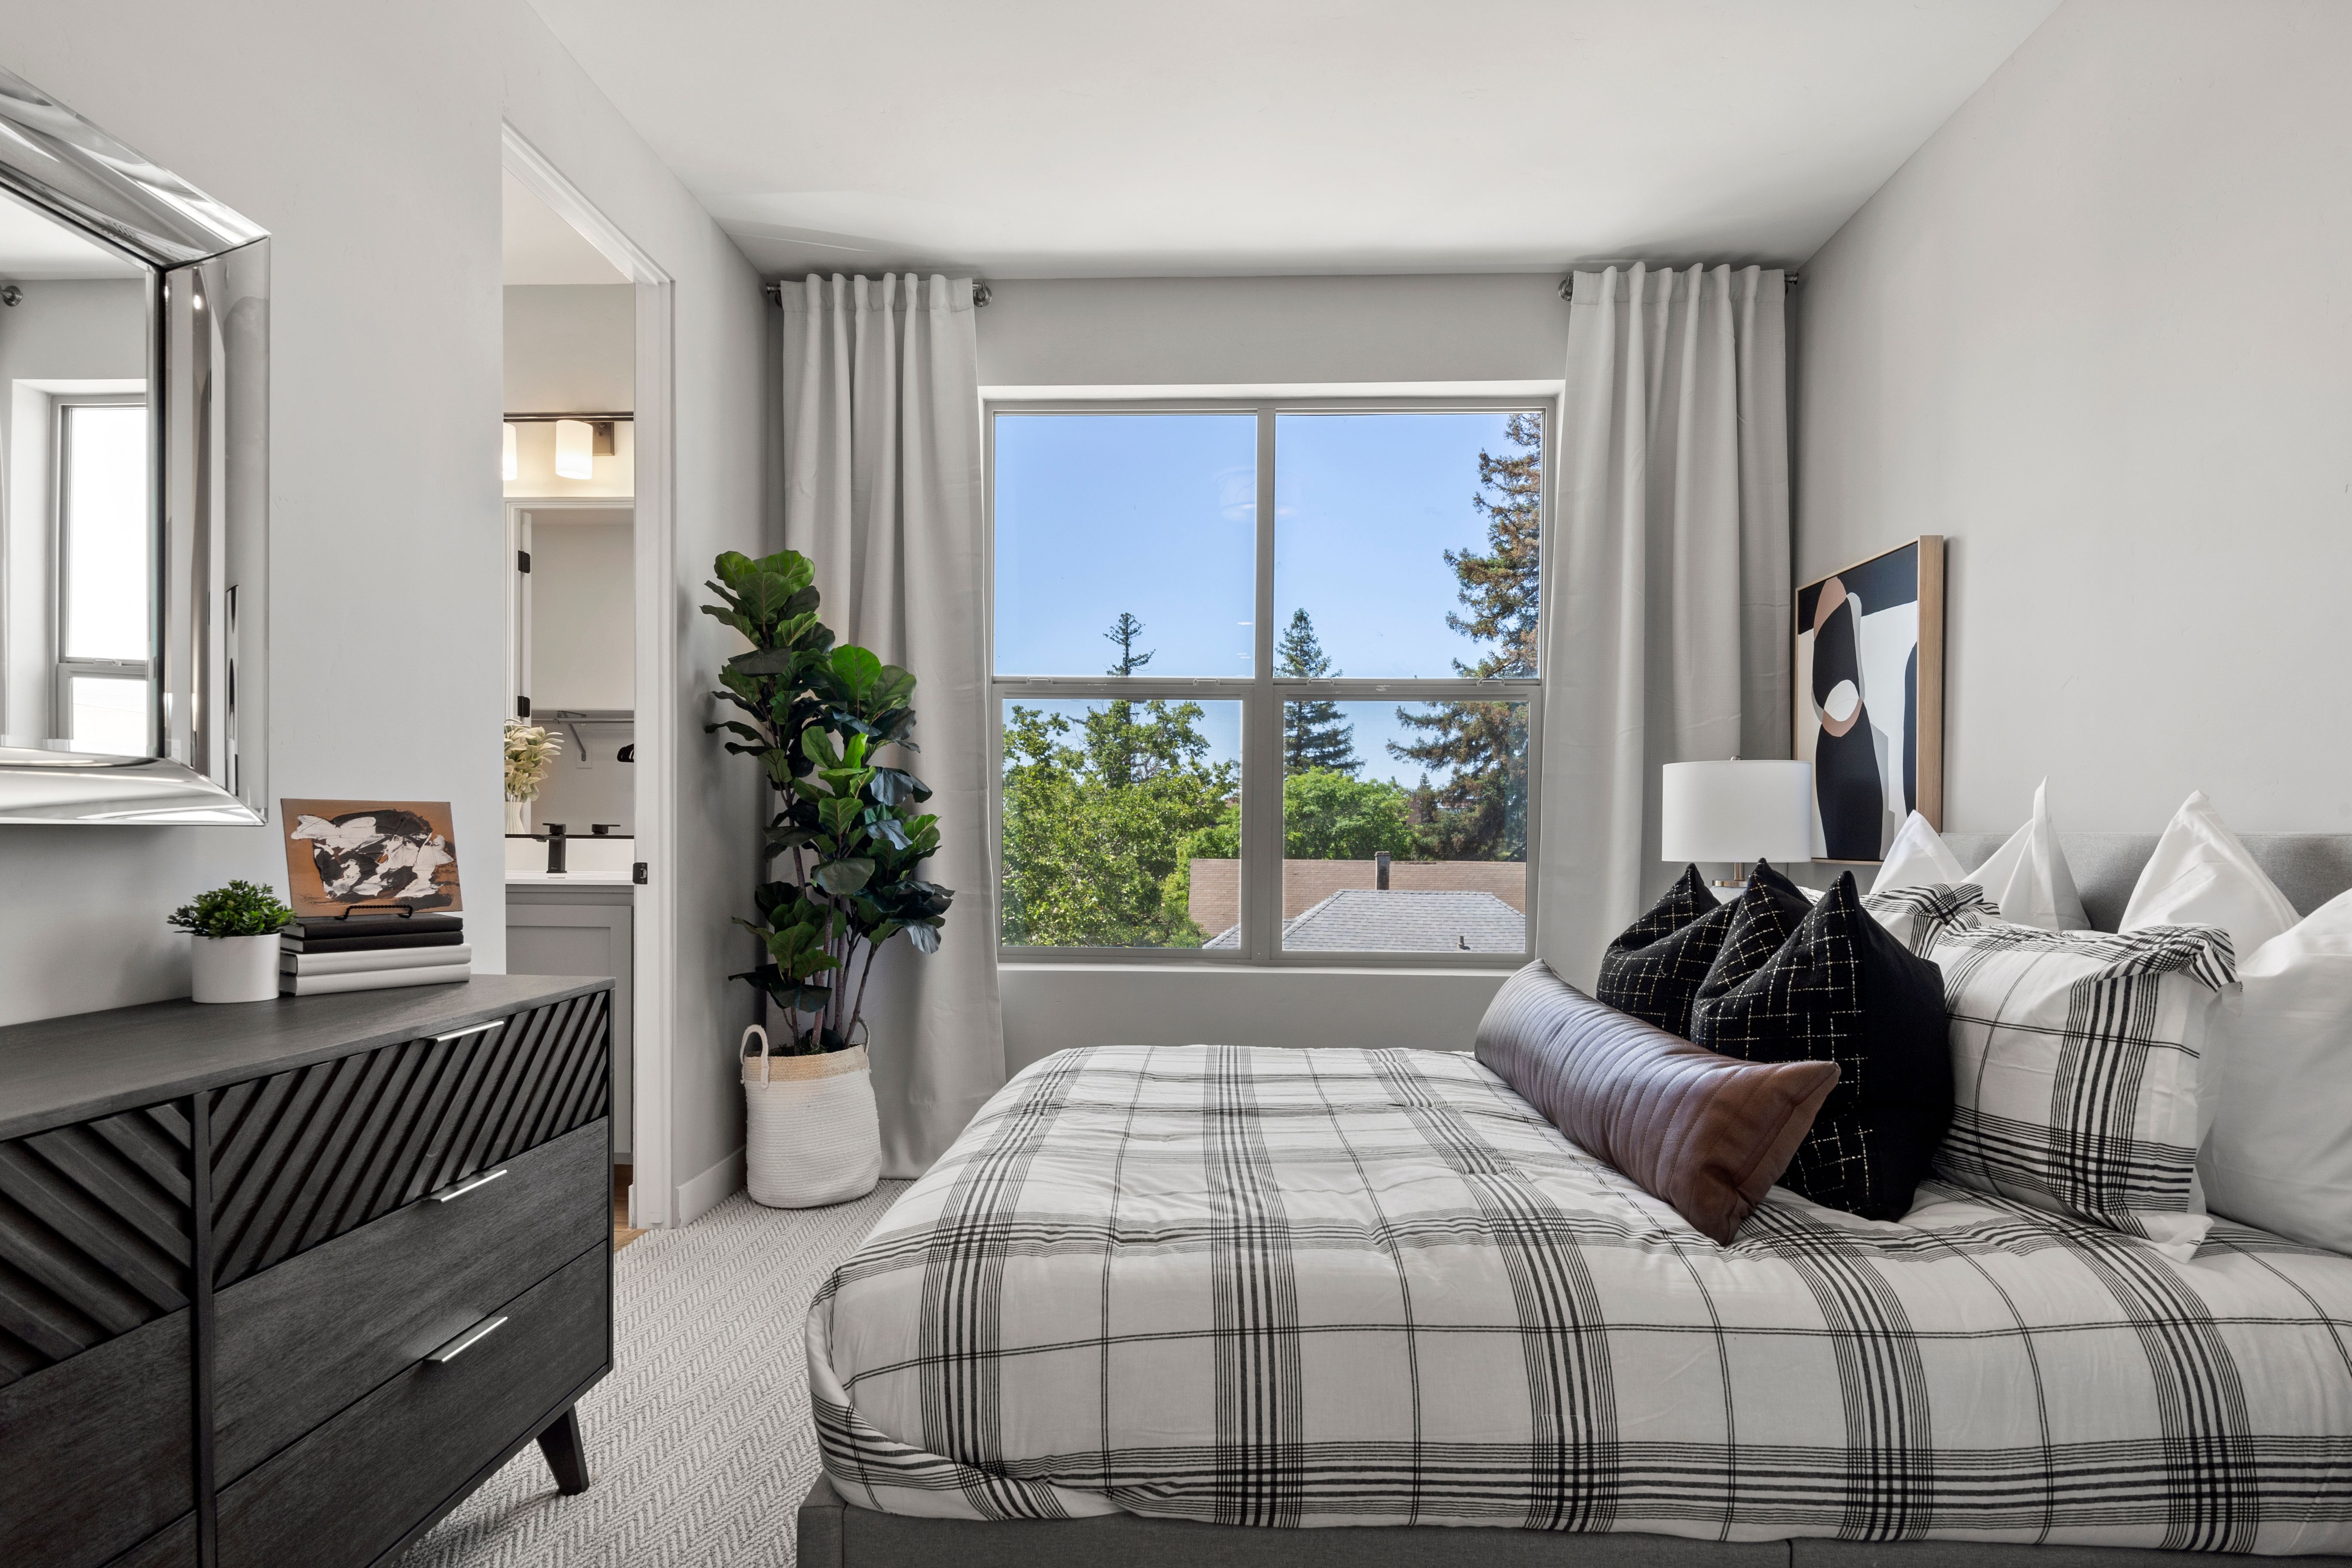 Bedroom featured in the Plan B By Next Generation Capital  in Sacramento, CA